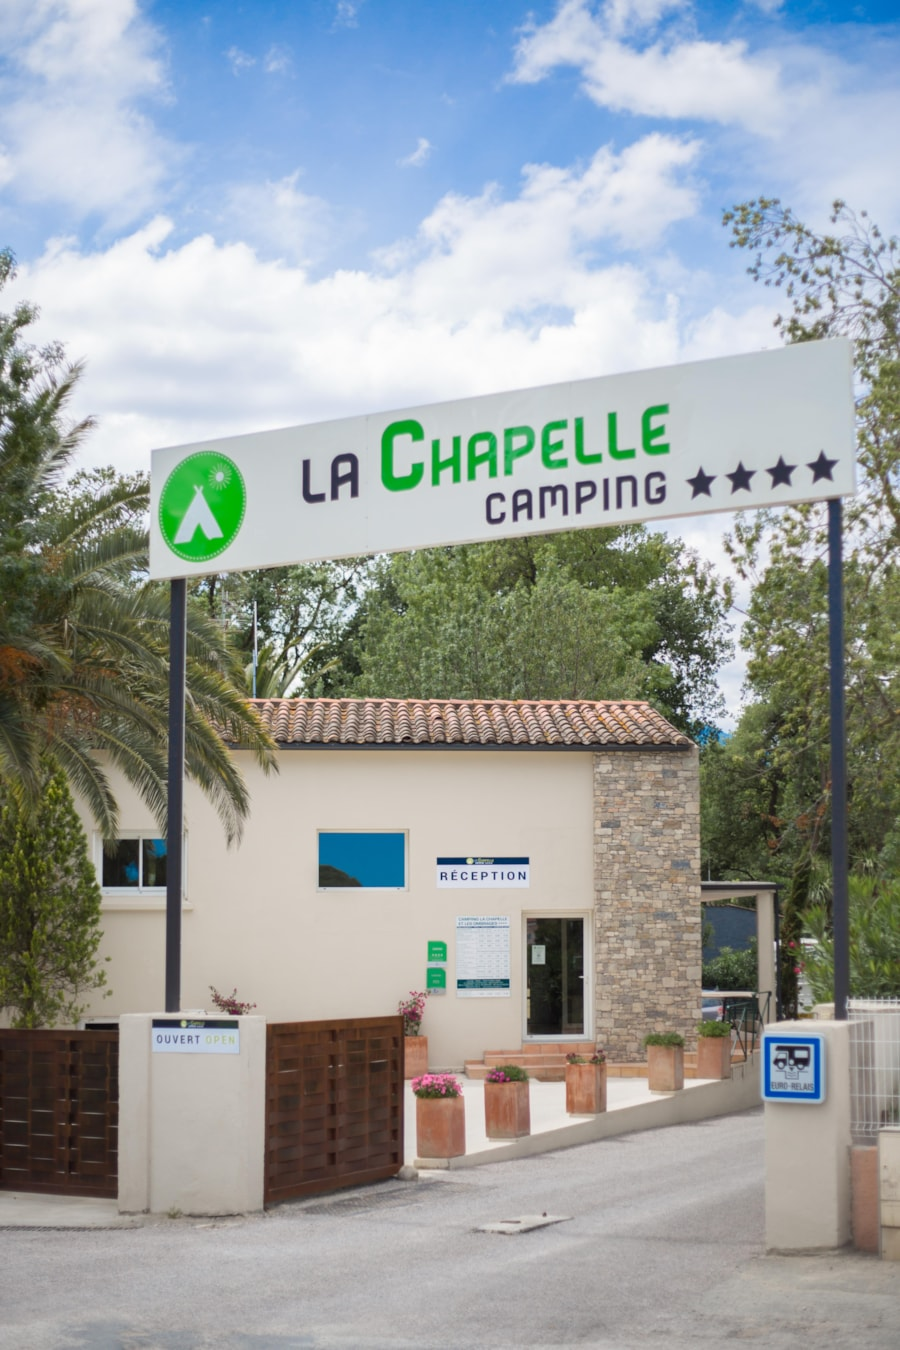 Camping La Chapelle Languedoc Roussillon France Club Campings